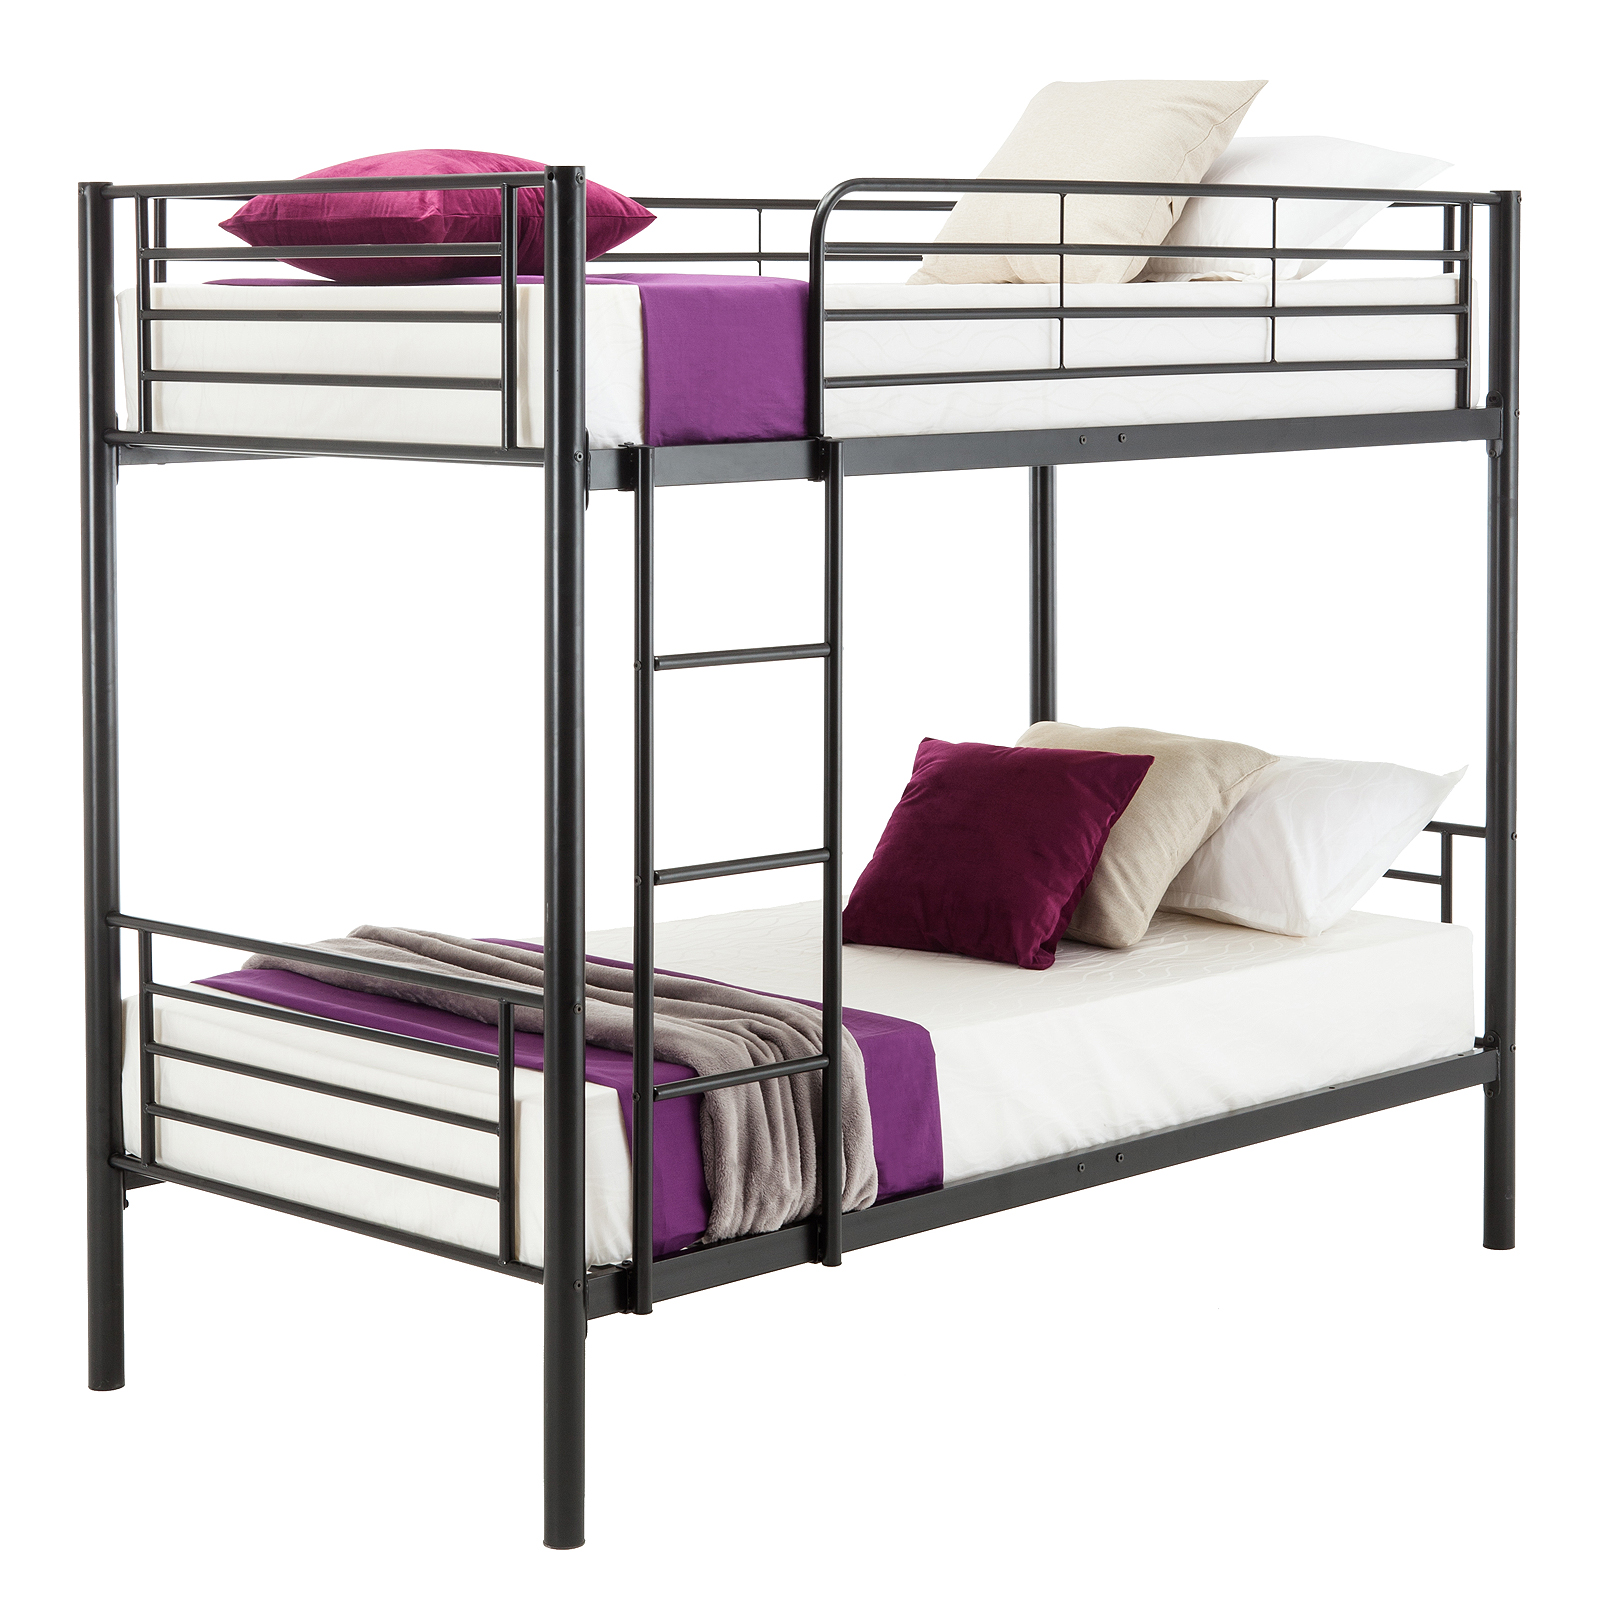 Metal bunk beds frame twin over twin ladder bedroom dorm Adult loft bed